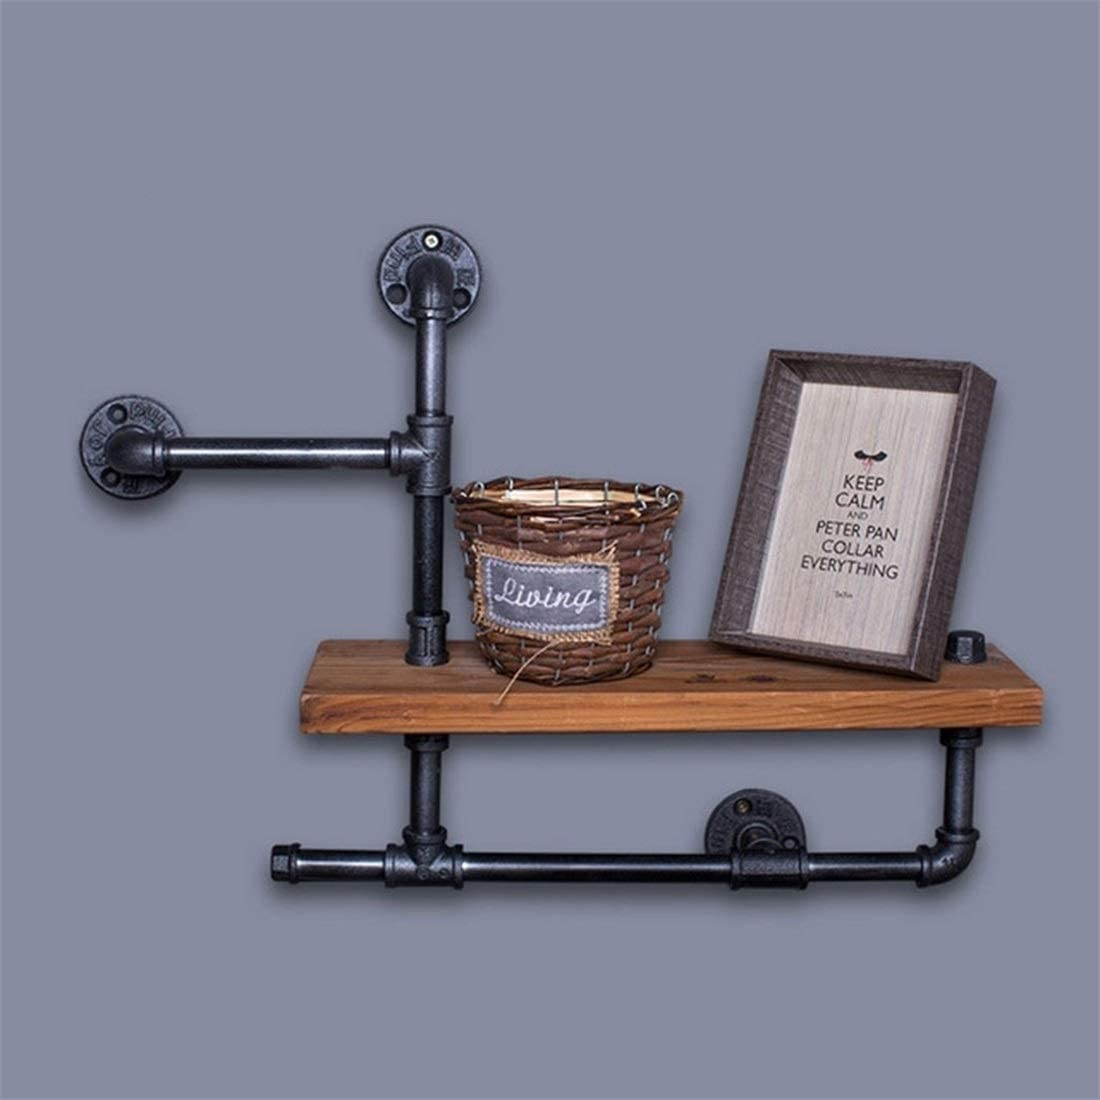 Wall Mounted Shelf Shelves Max 78% OFF Floating Mounte Great interest